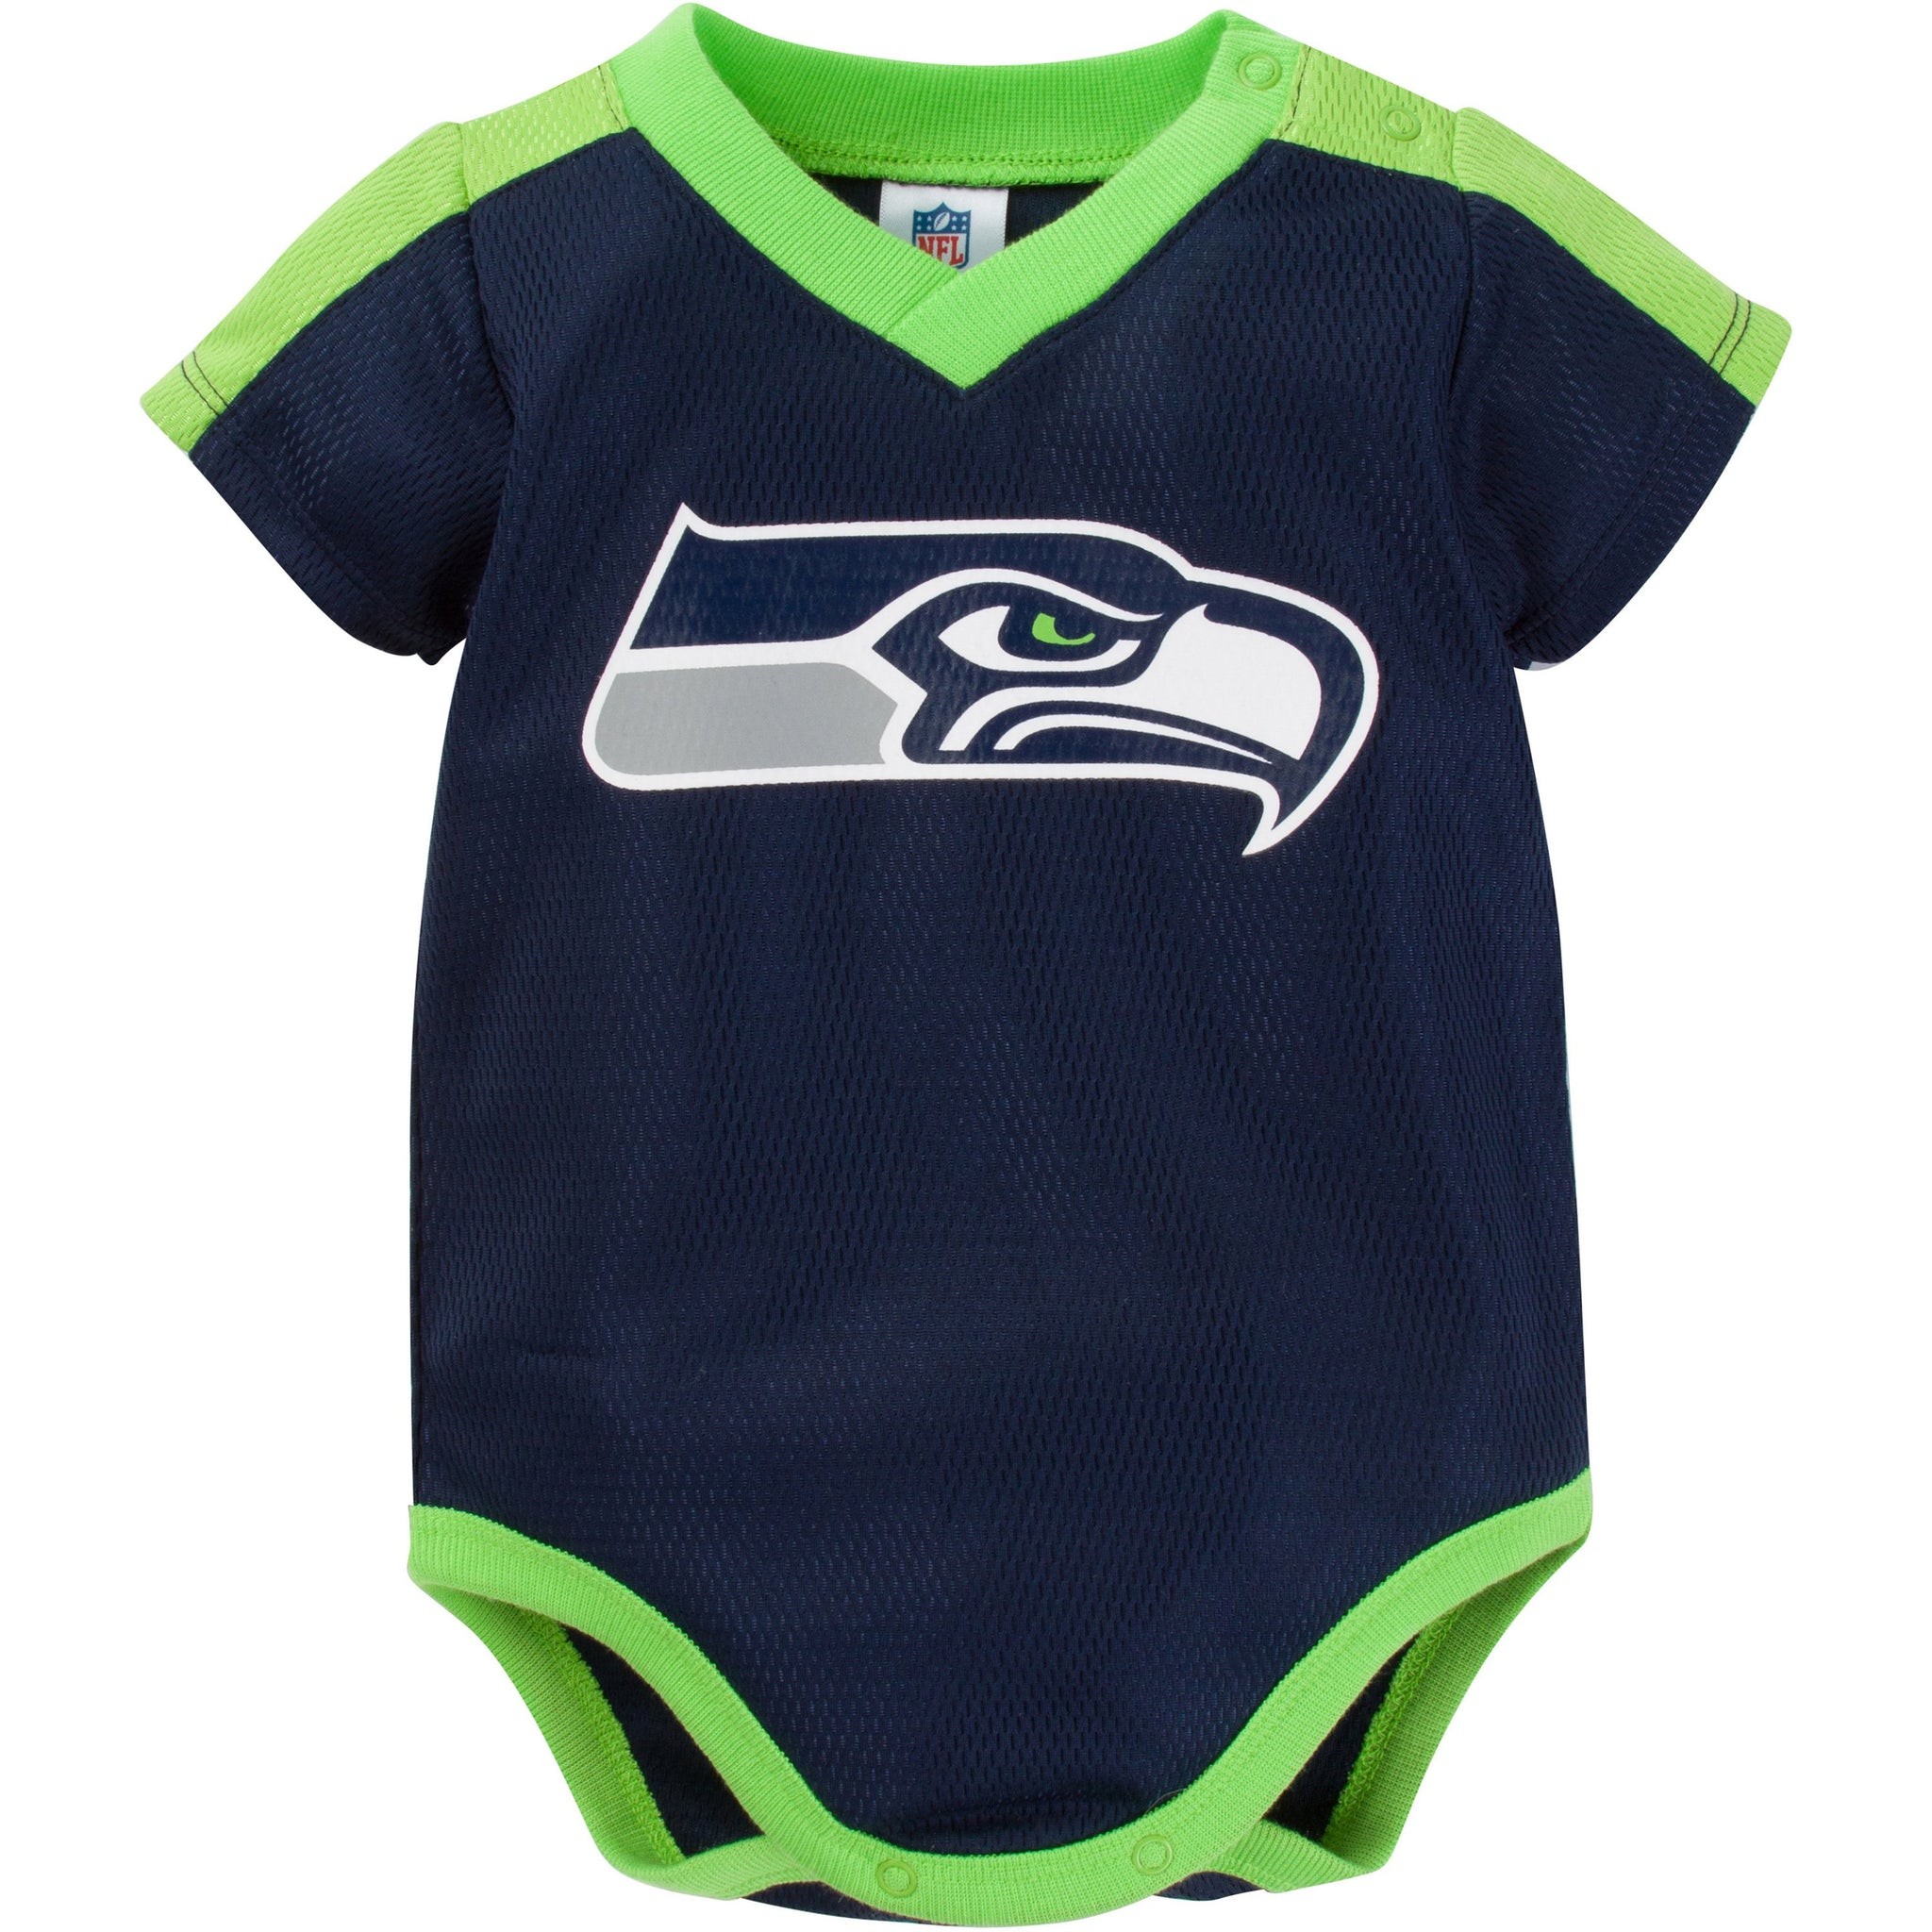 NFL Seahawks Infant Dazzle Short Sleeve Bodysuit-Gerber Childrenswear